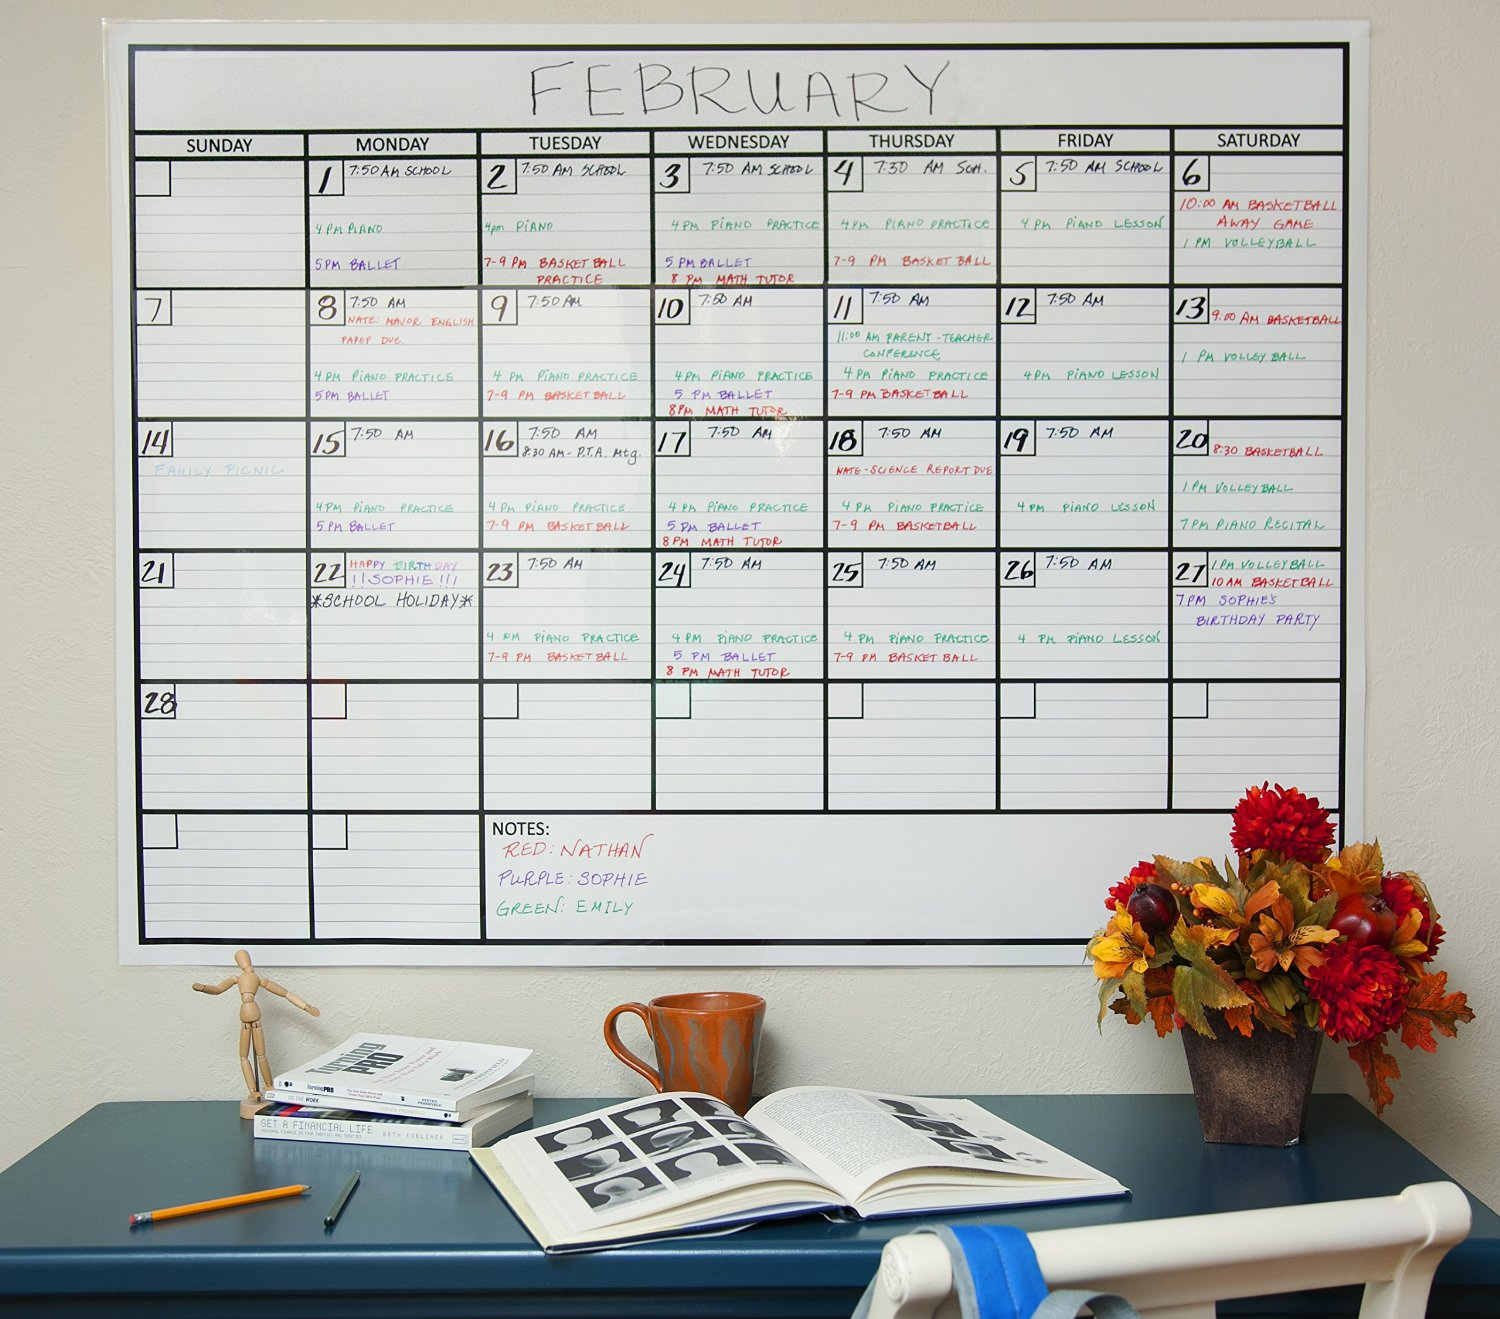 calendars for scheduling